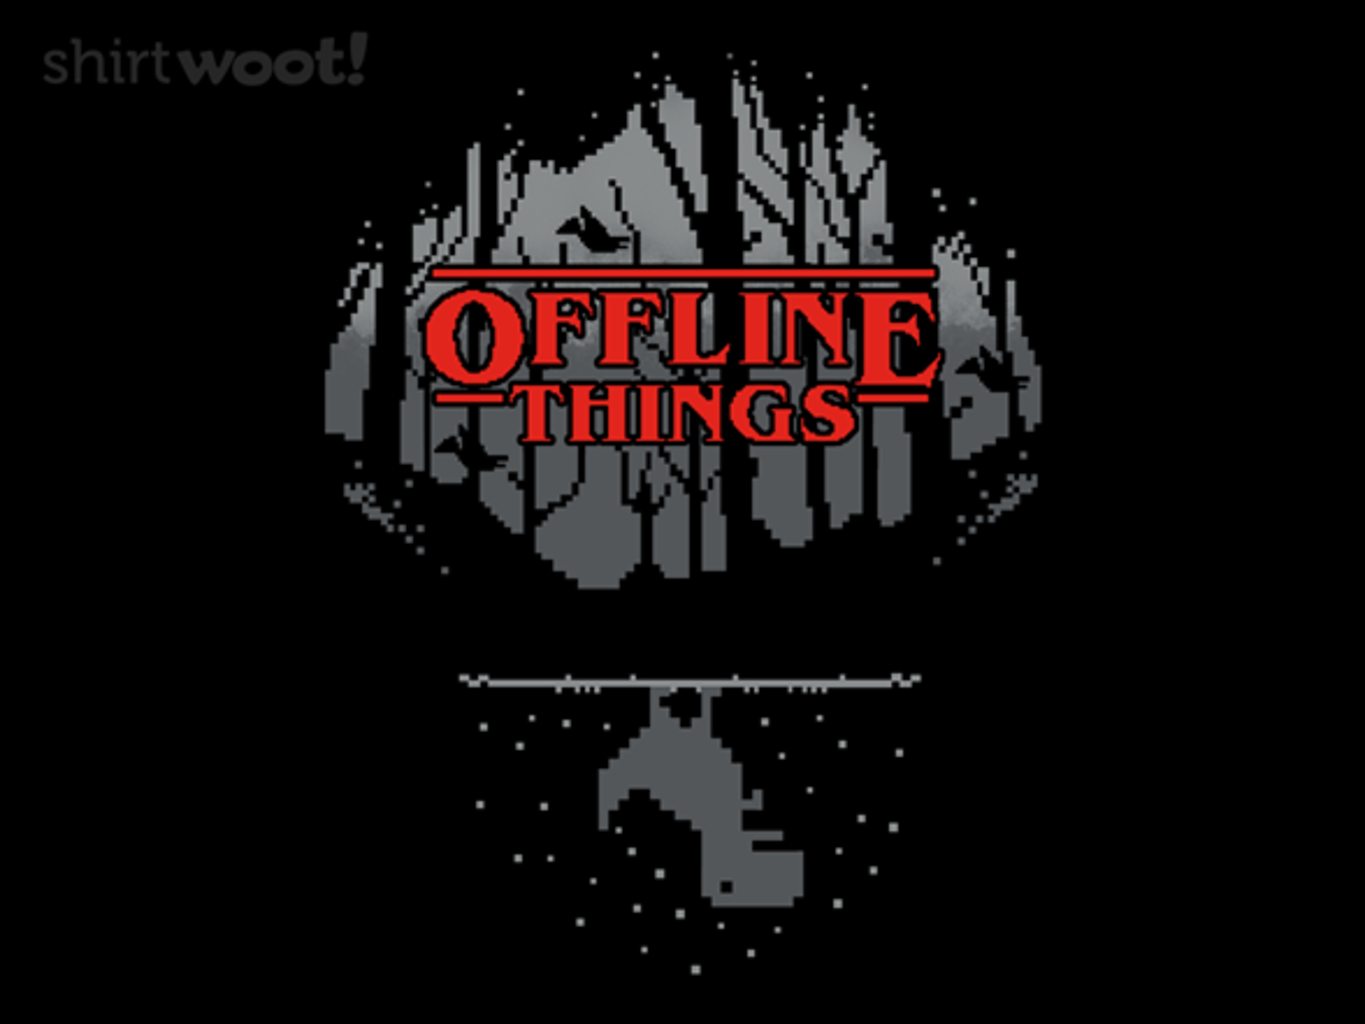 Woot!: Offline Things - $15.00 + Free shipping